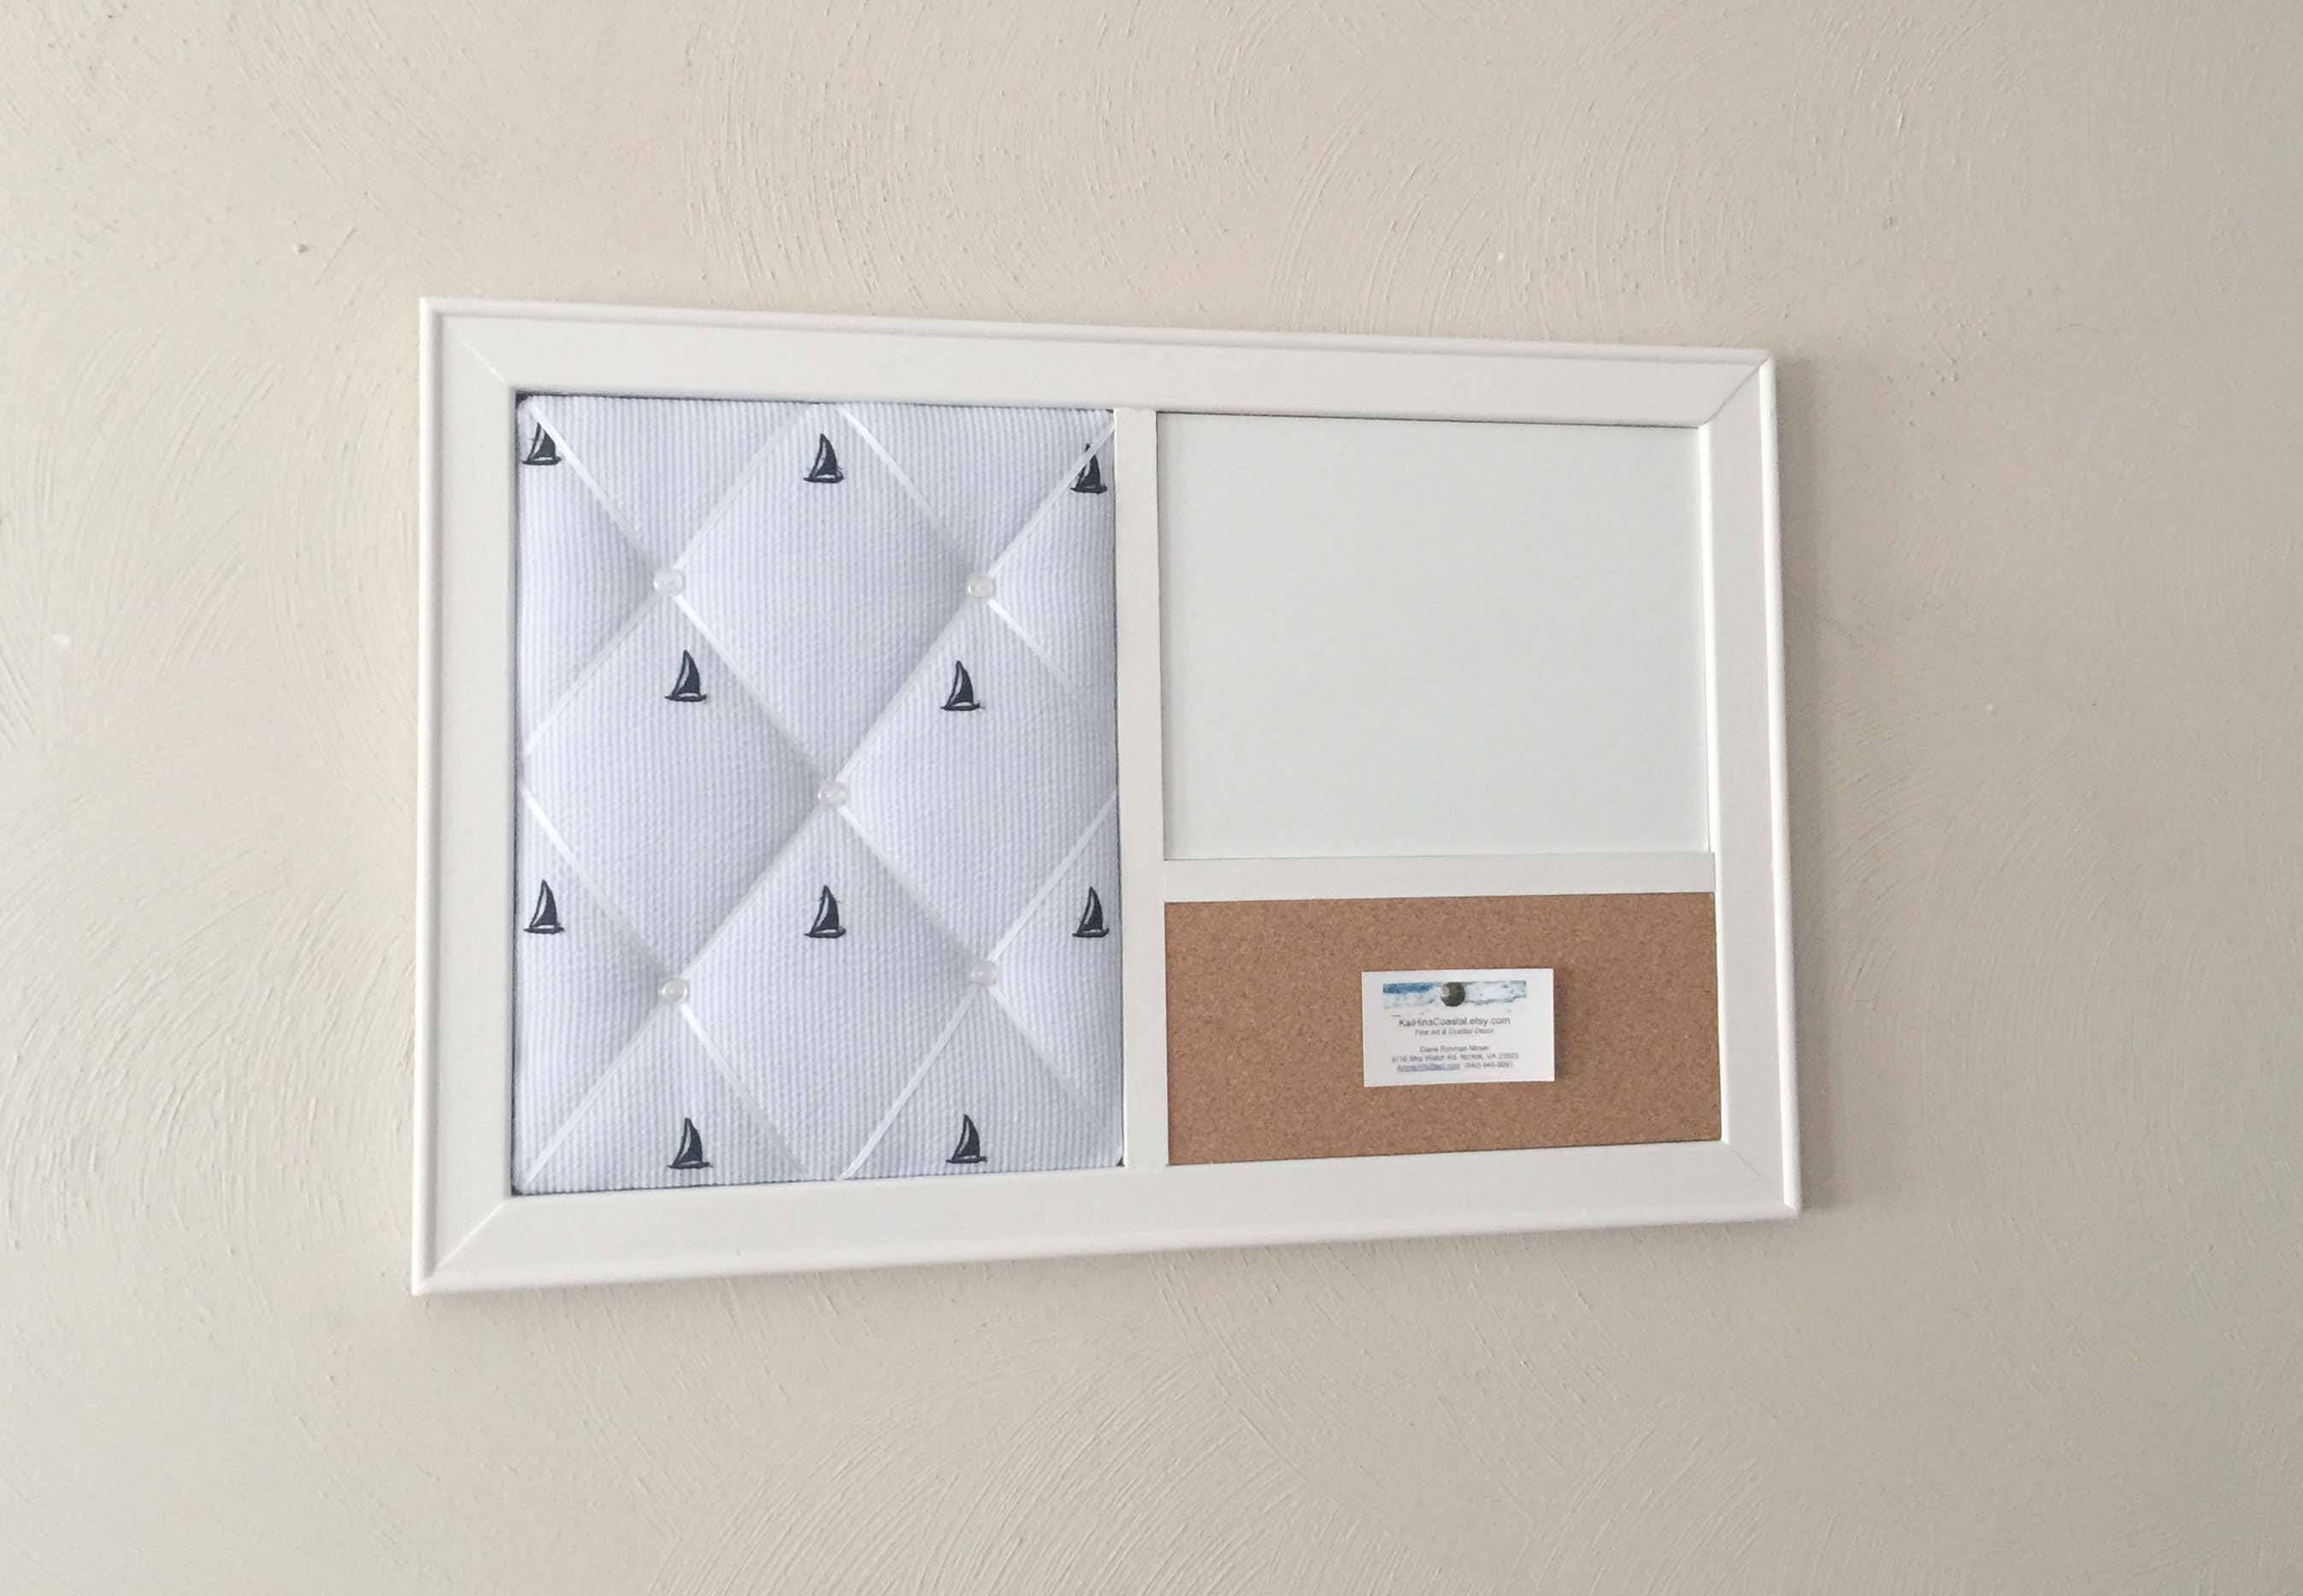 Nautical French Memo Board Magnetic Whiteboard Corkboard Wall Organizer In A White Frame Nautical Nursery Decor Blue Boys Room